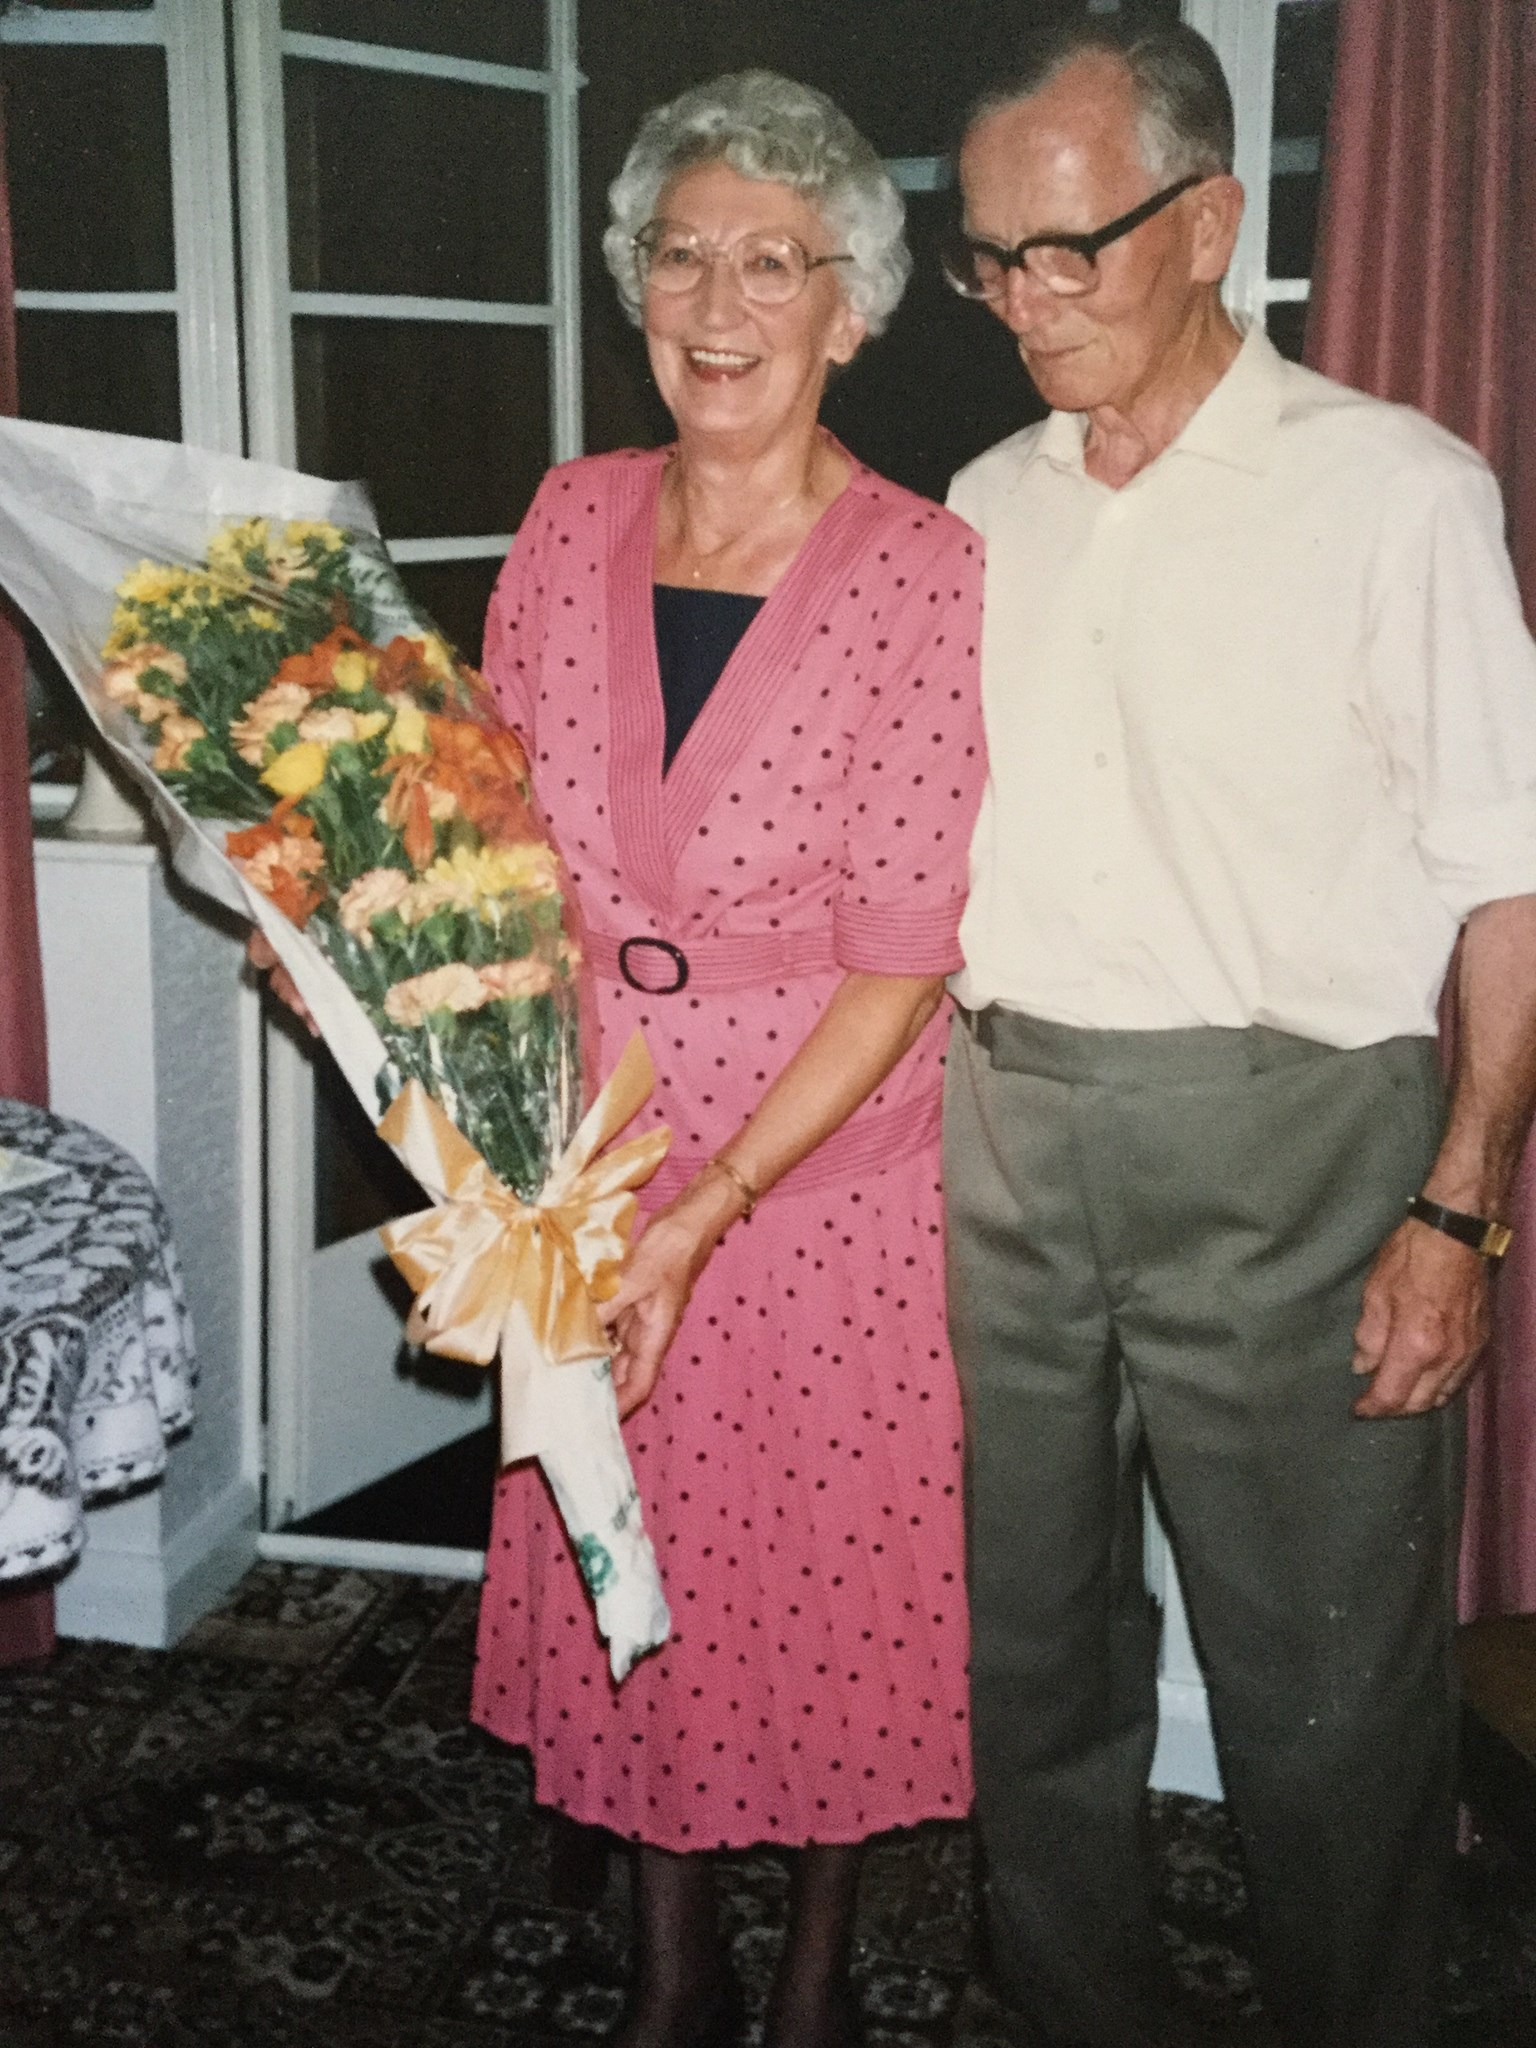 Such a warm smile - taken at Golden Wedding celebration 21.7.90